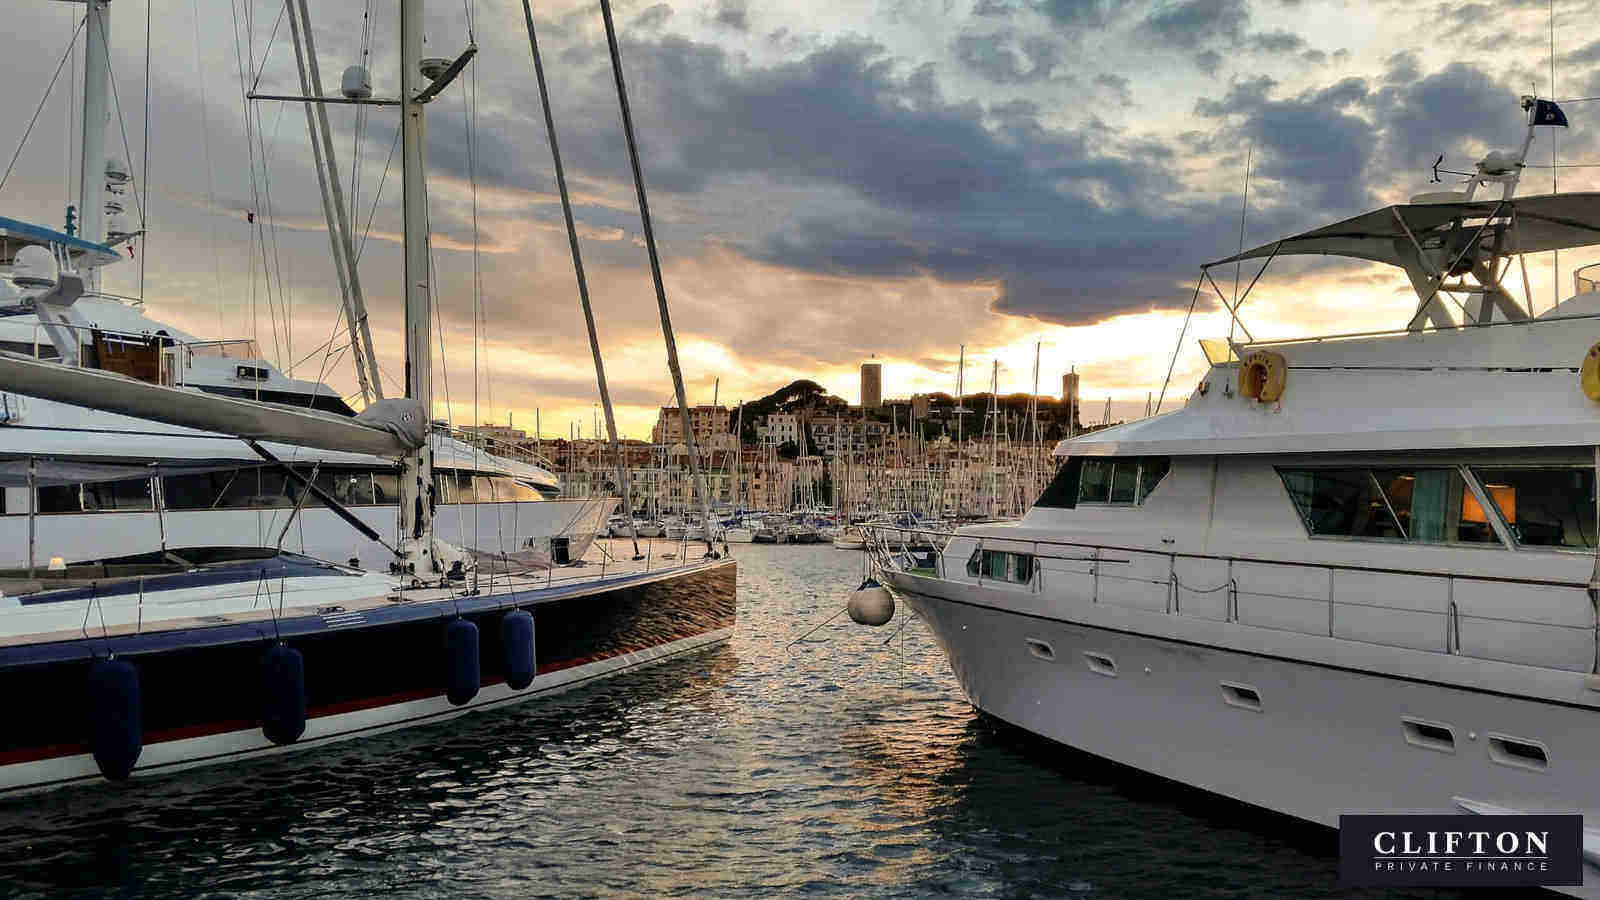 Yacht crew mortgage: How to get finance for a UK property